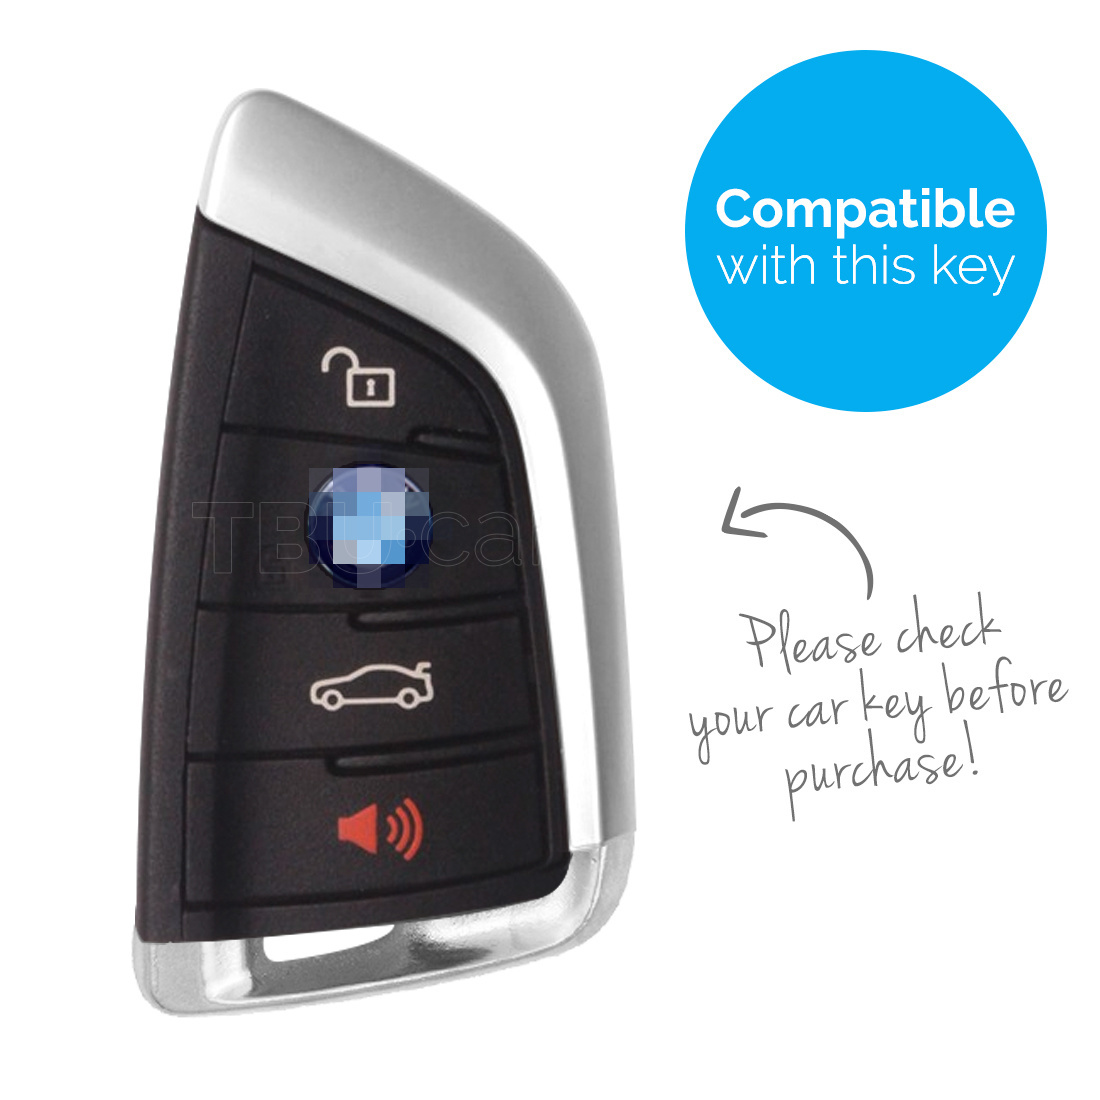 TBU car TBU car Car key cover compatible with BMW - TPU Protective Remote Key Shell - FOB Case Cover - Gold